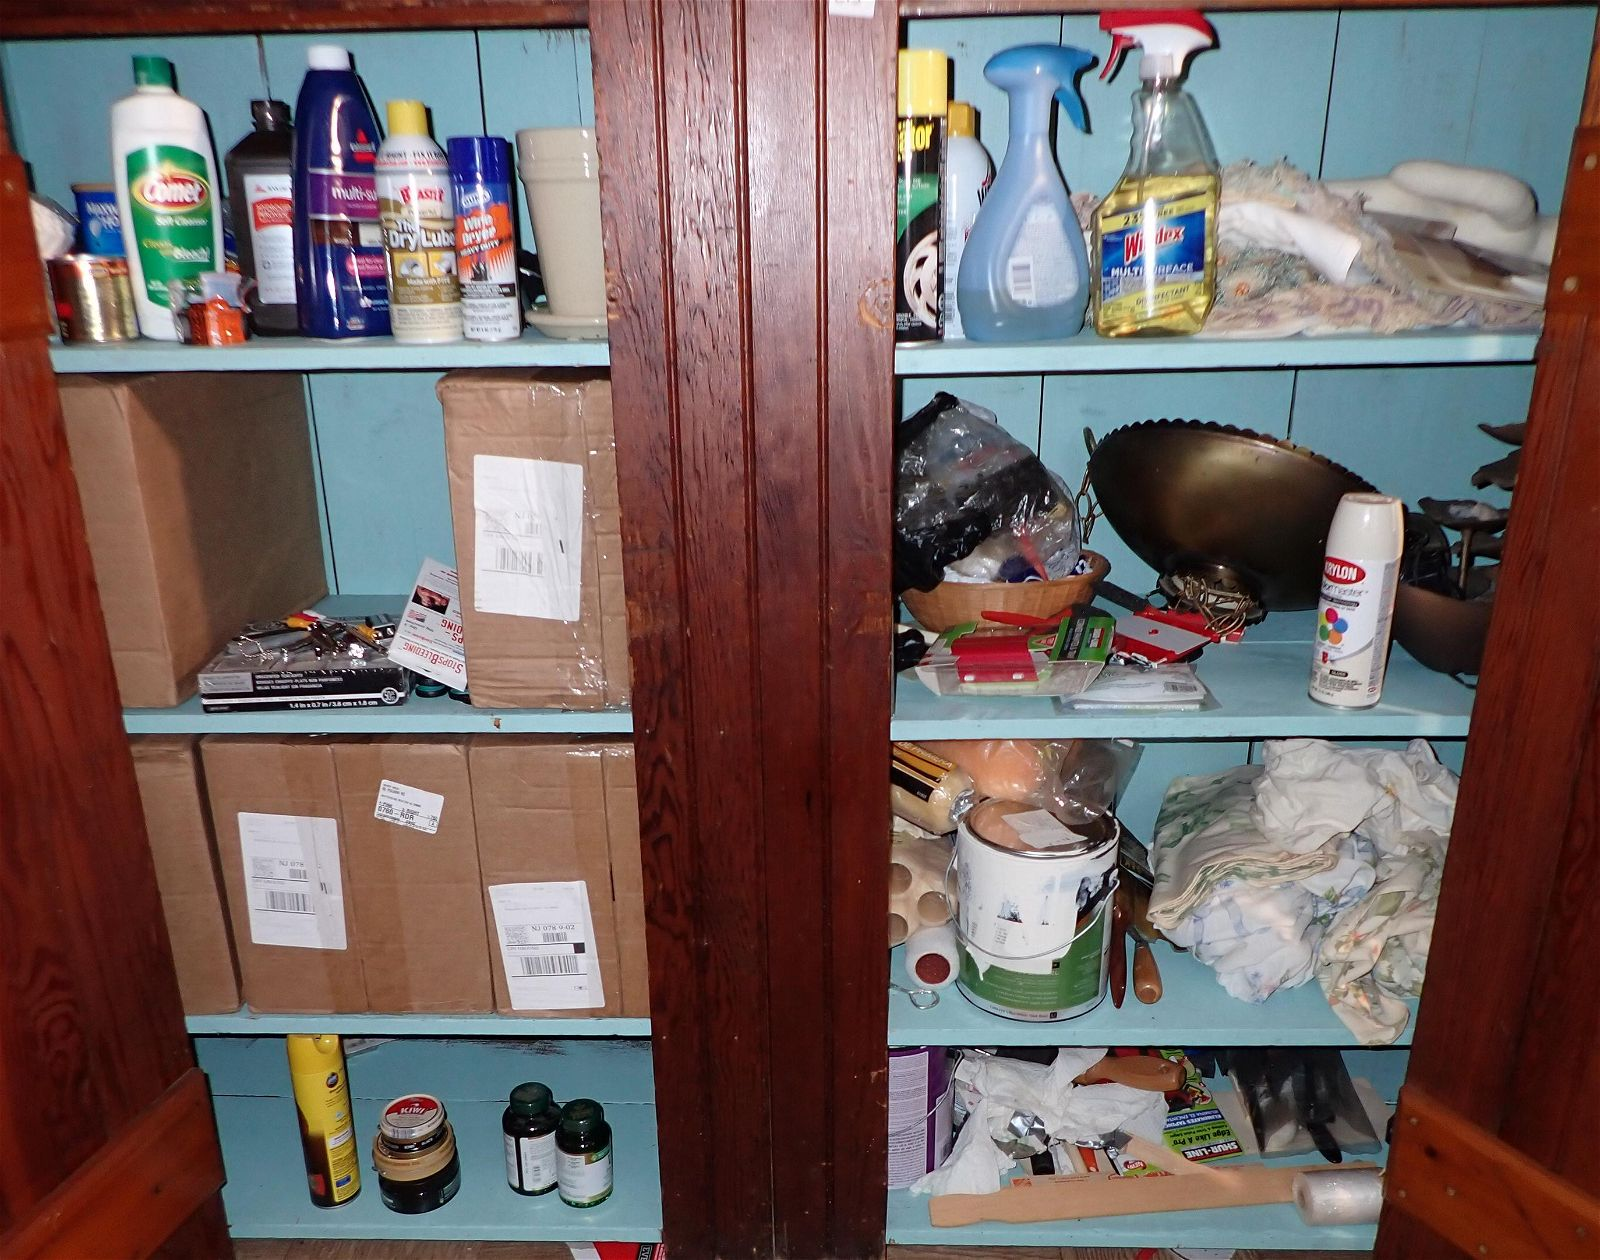 Contents of Cupboard